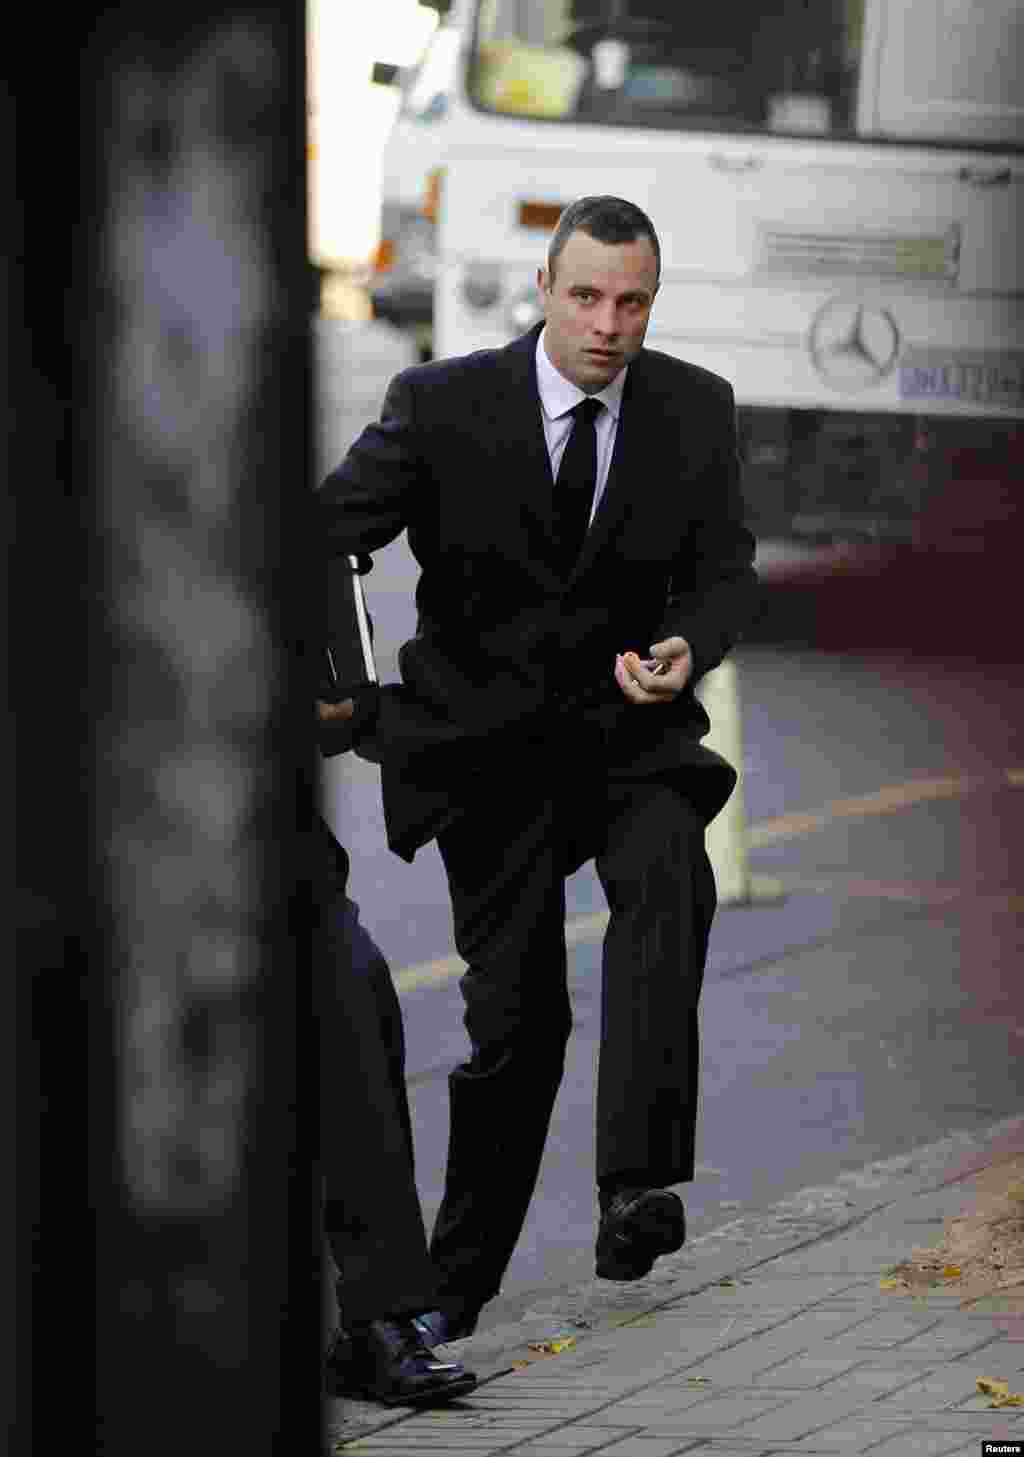 Olympic and Paralympic track star Oscar Pistorius arrives for his trial, at the North Gauteng High Court in Pretoria, May 20, 2014.